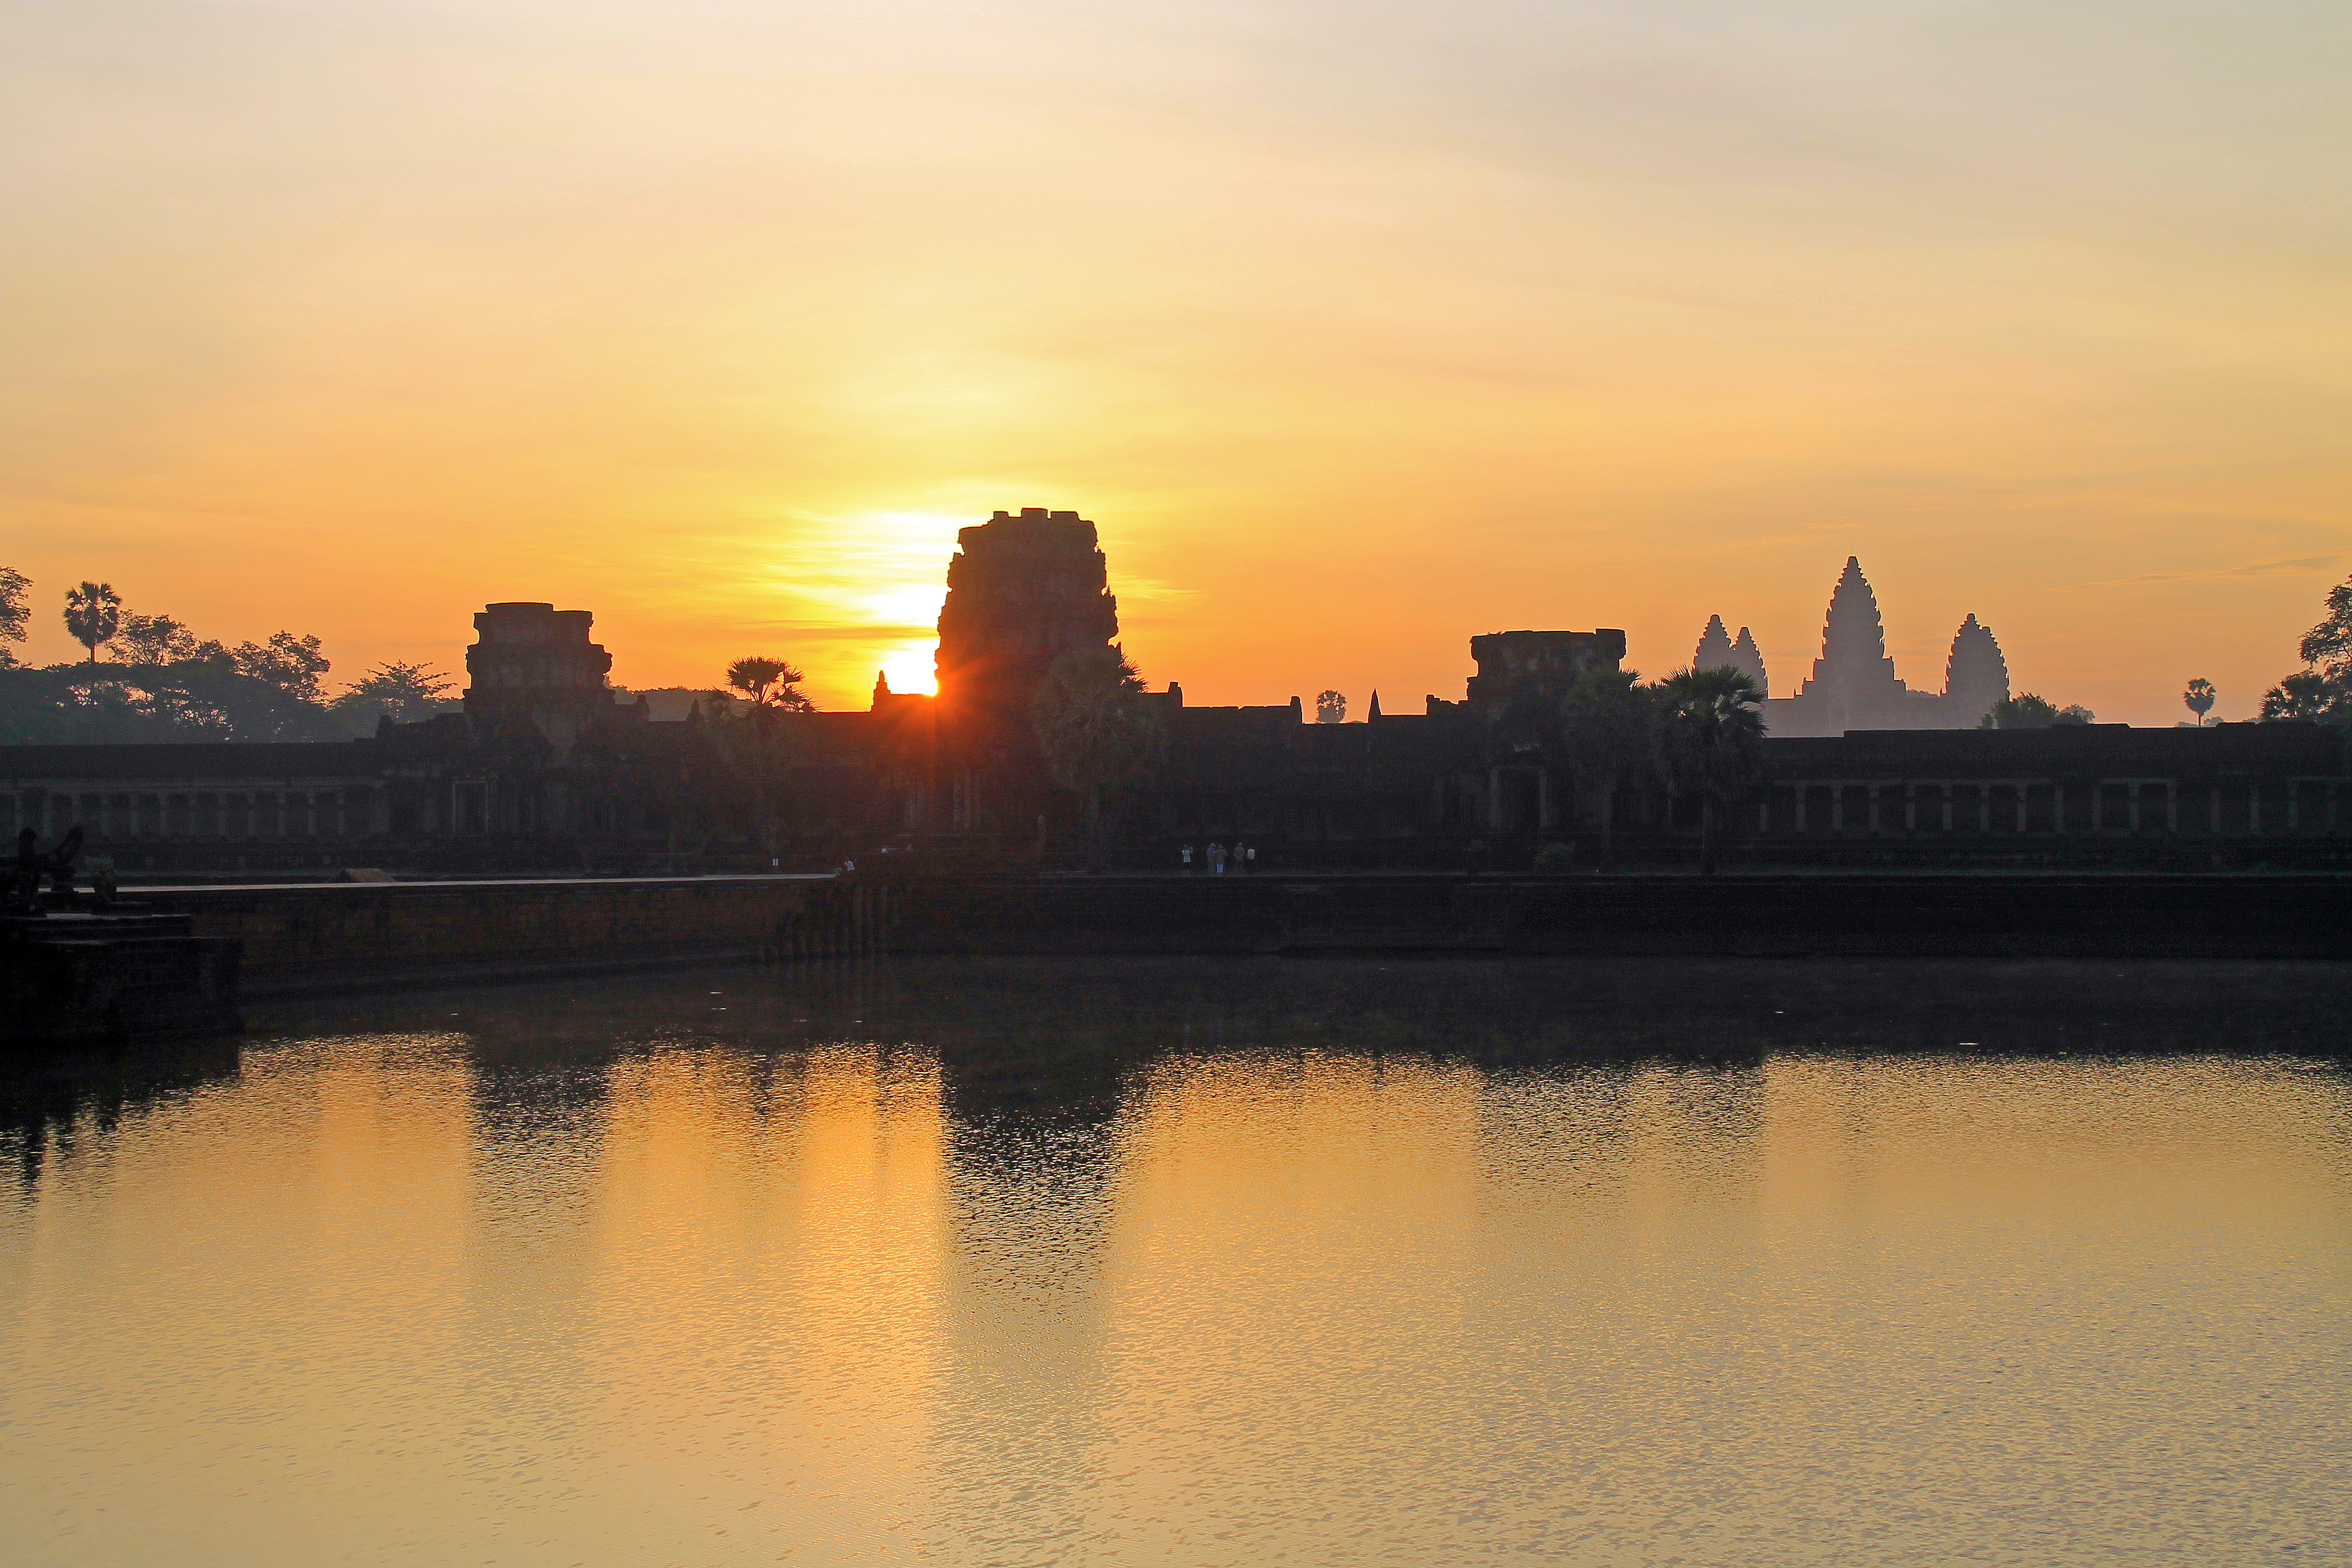 Sunrise over the Angkor Wat.